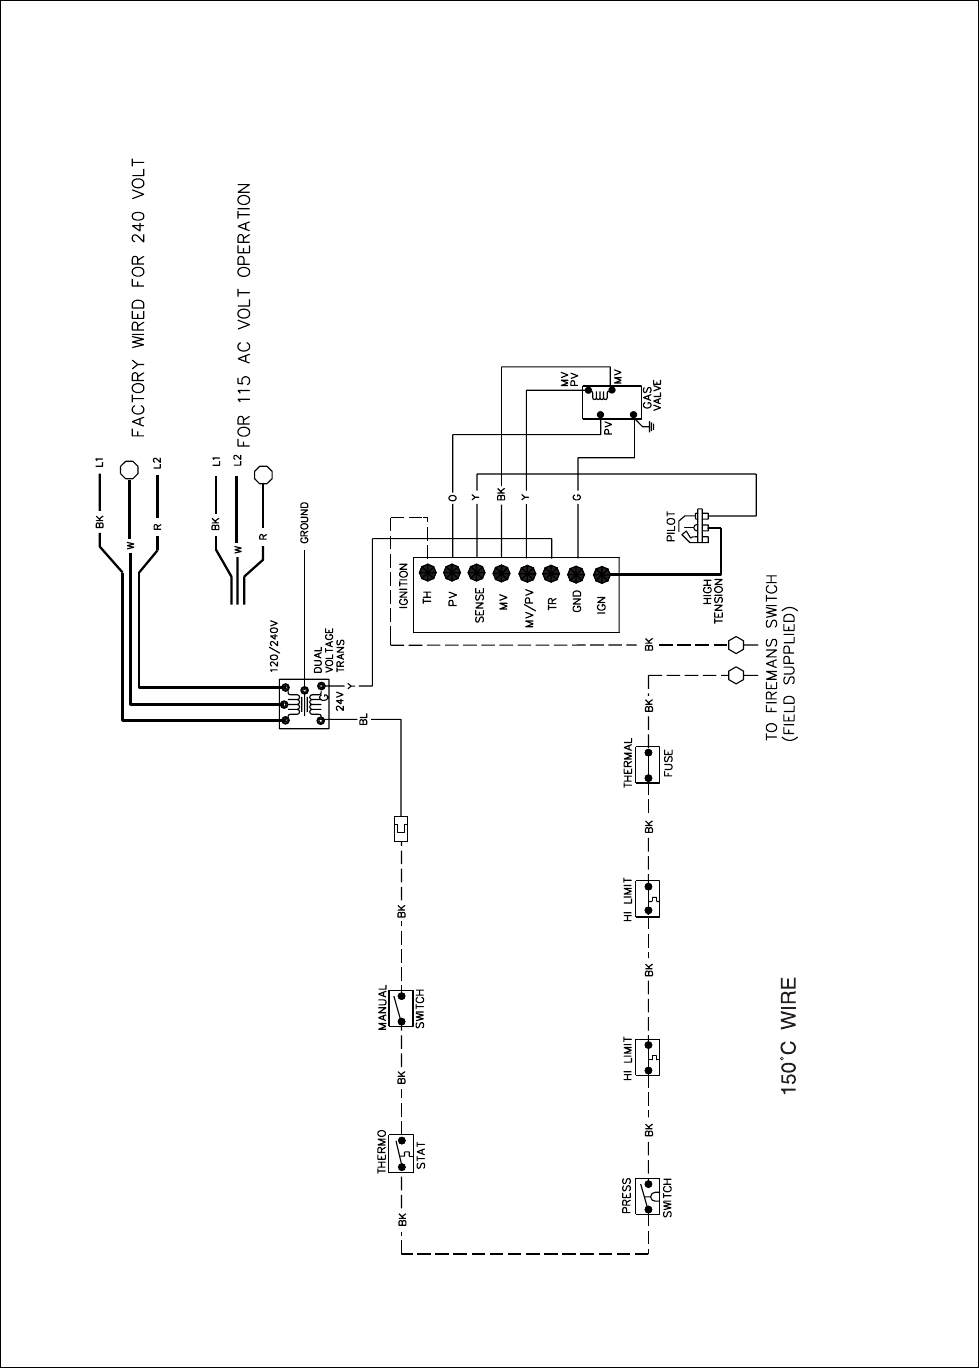 Raypak H3 Wiring Diagram : 24 Wiring Diagram Images